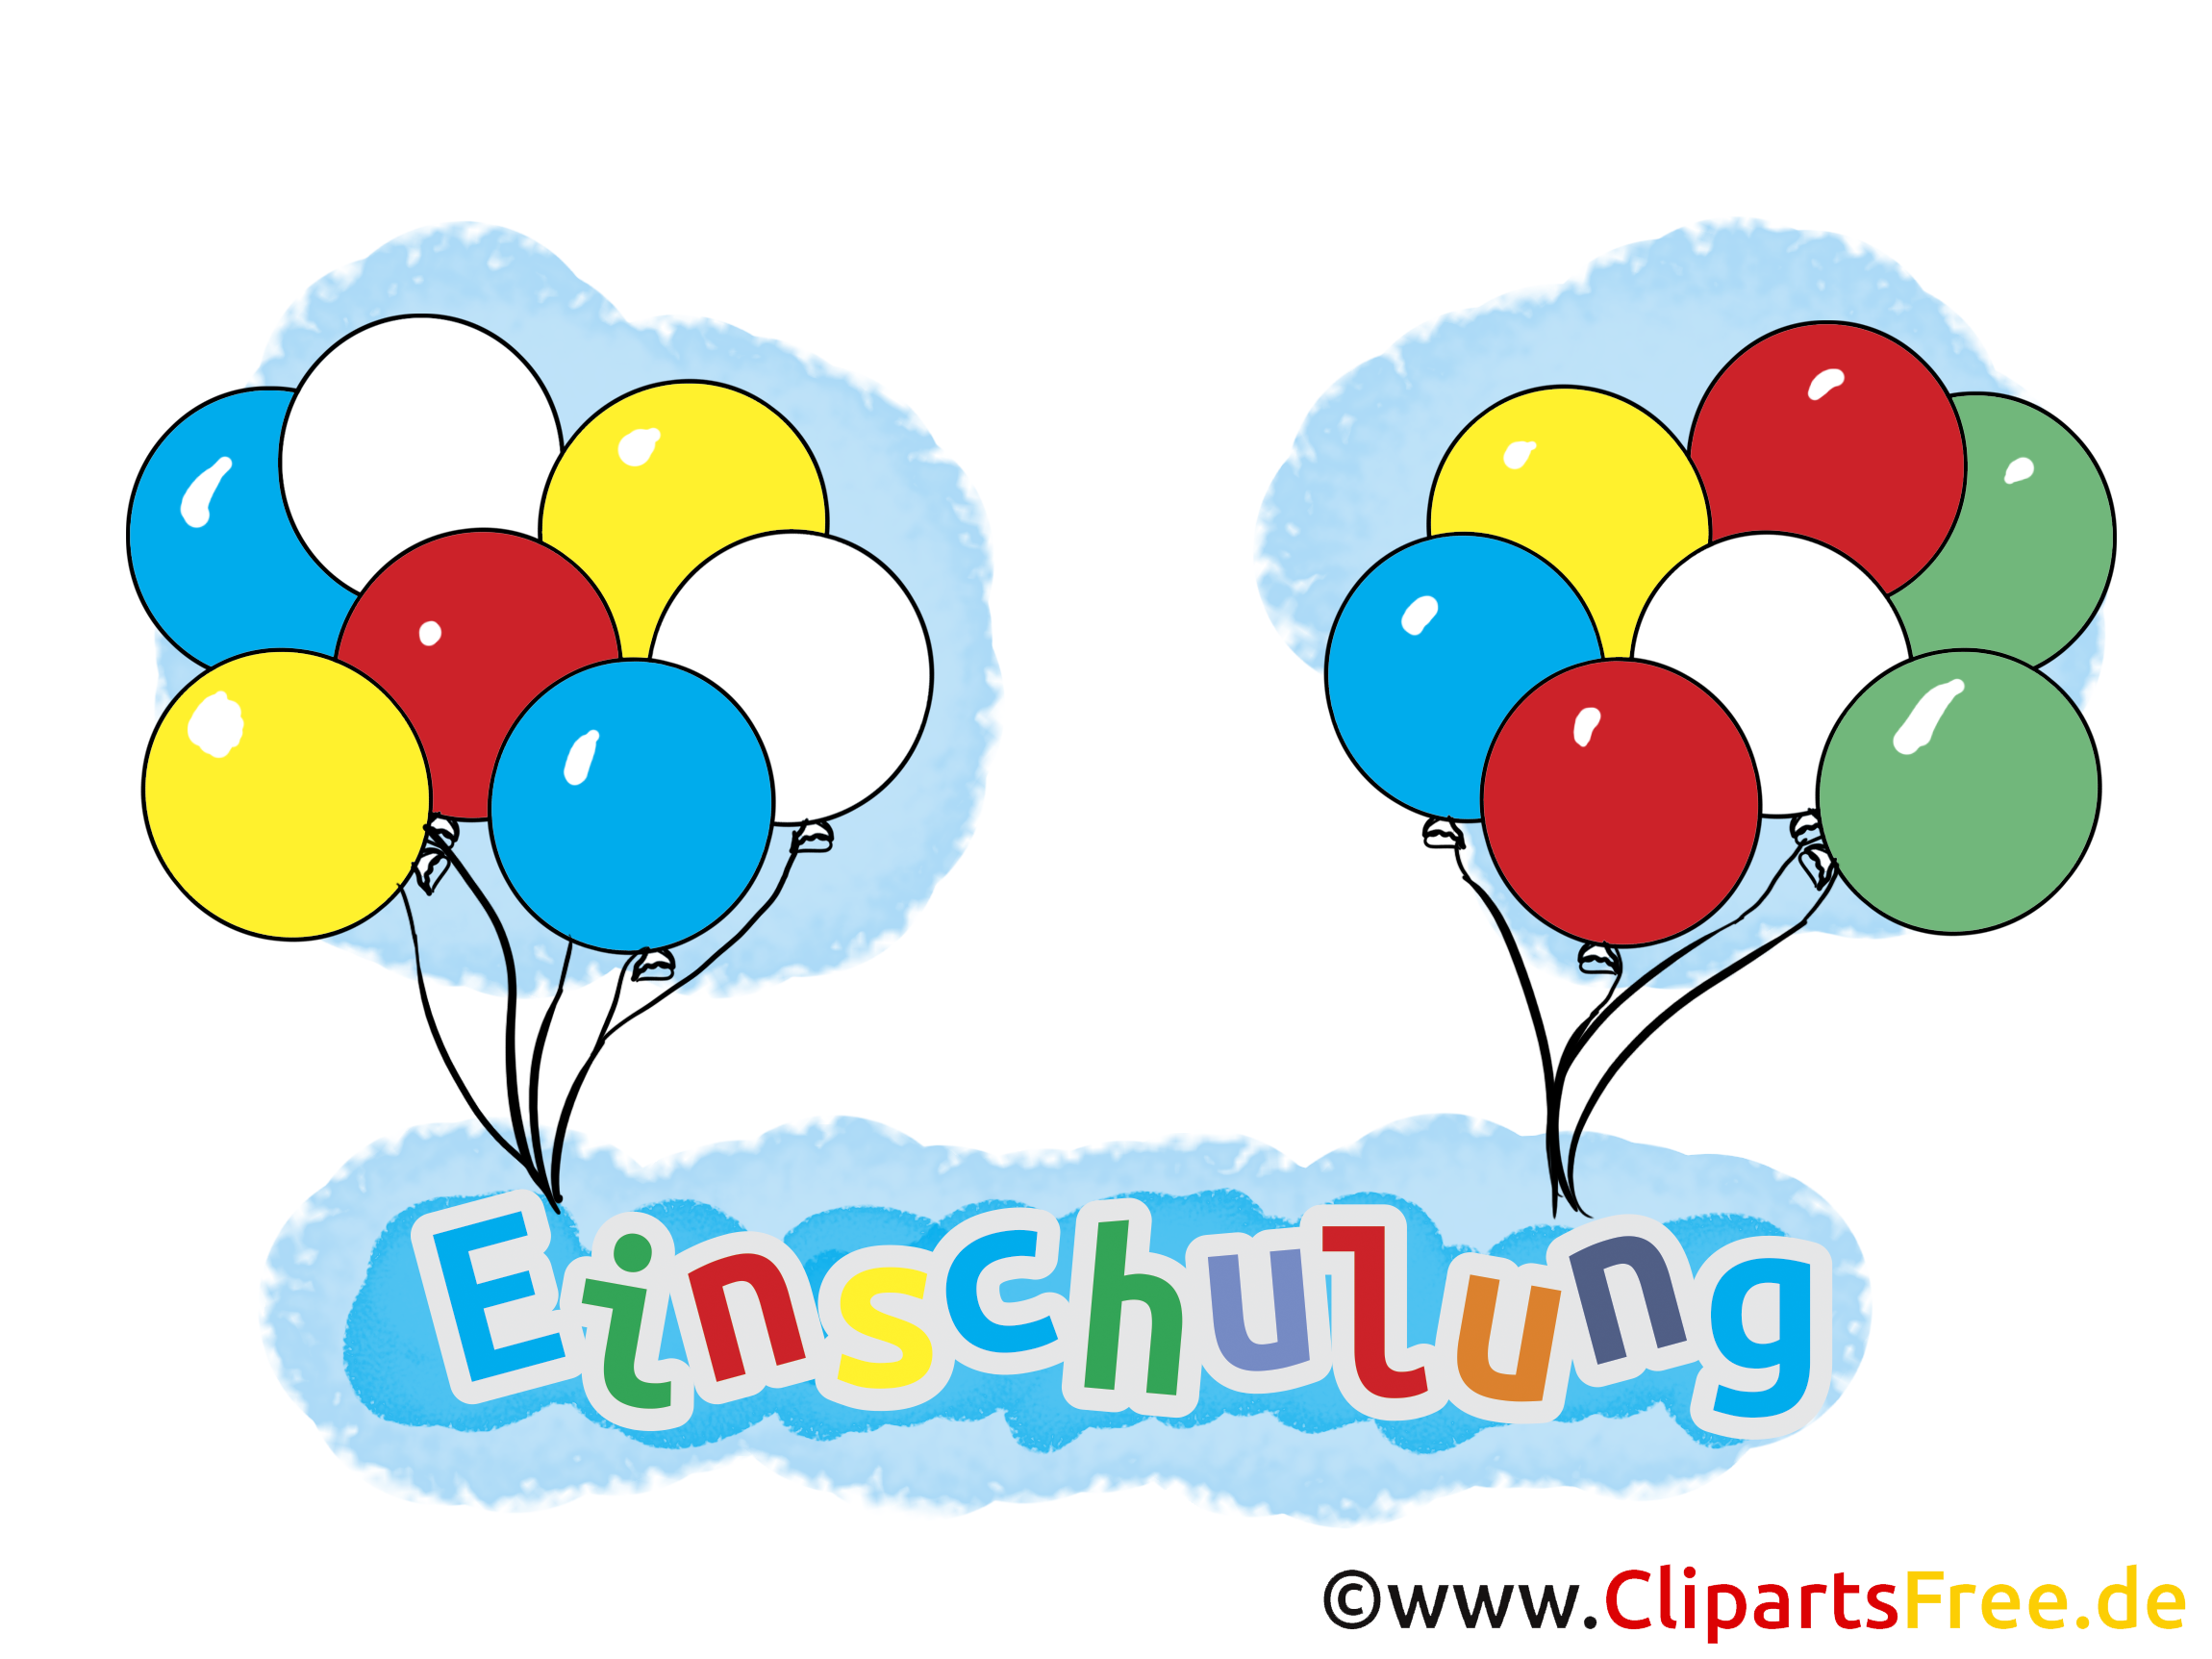 Clipart kostenlos schulanfang graphic library Clipart kostenlos schulanfang - ClipartFest graphic library